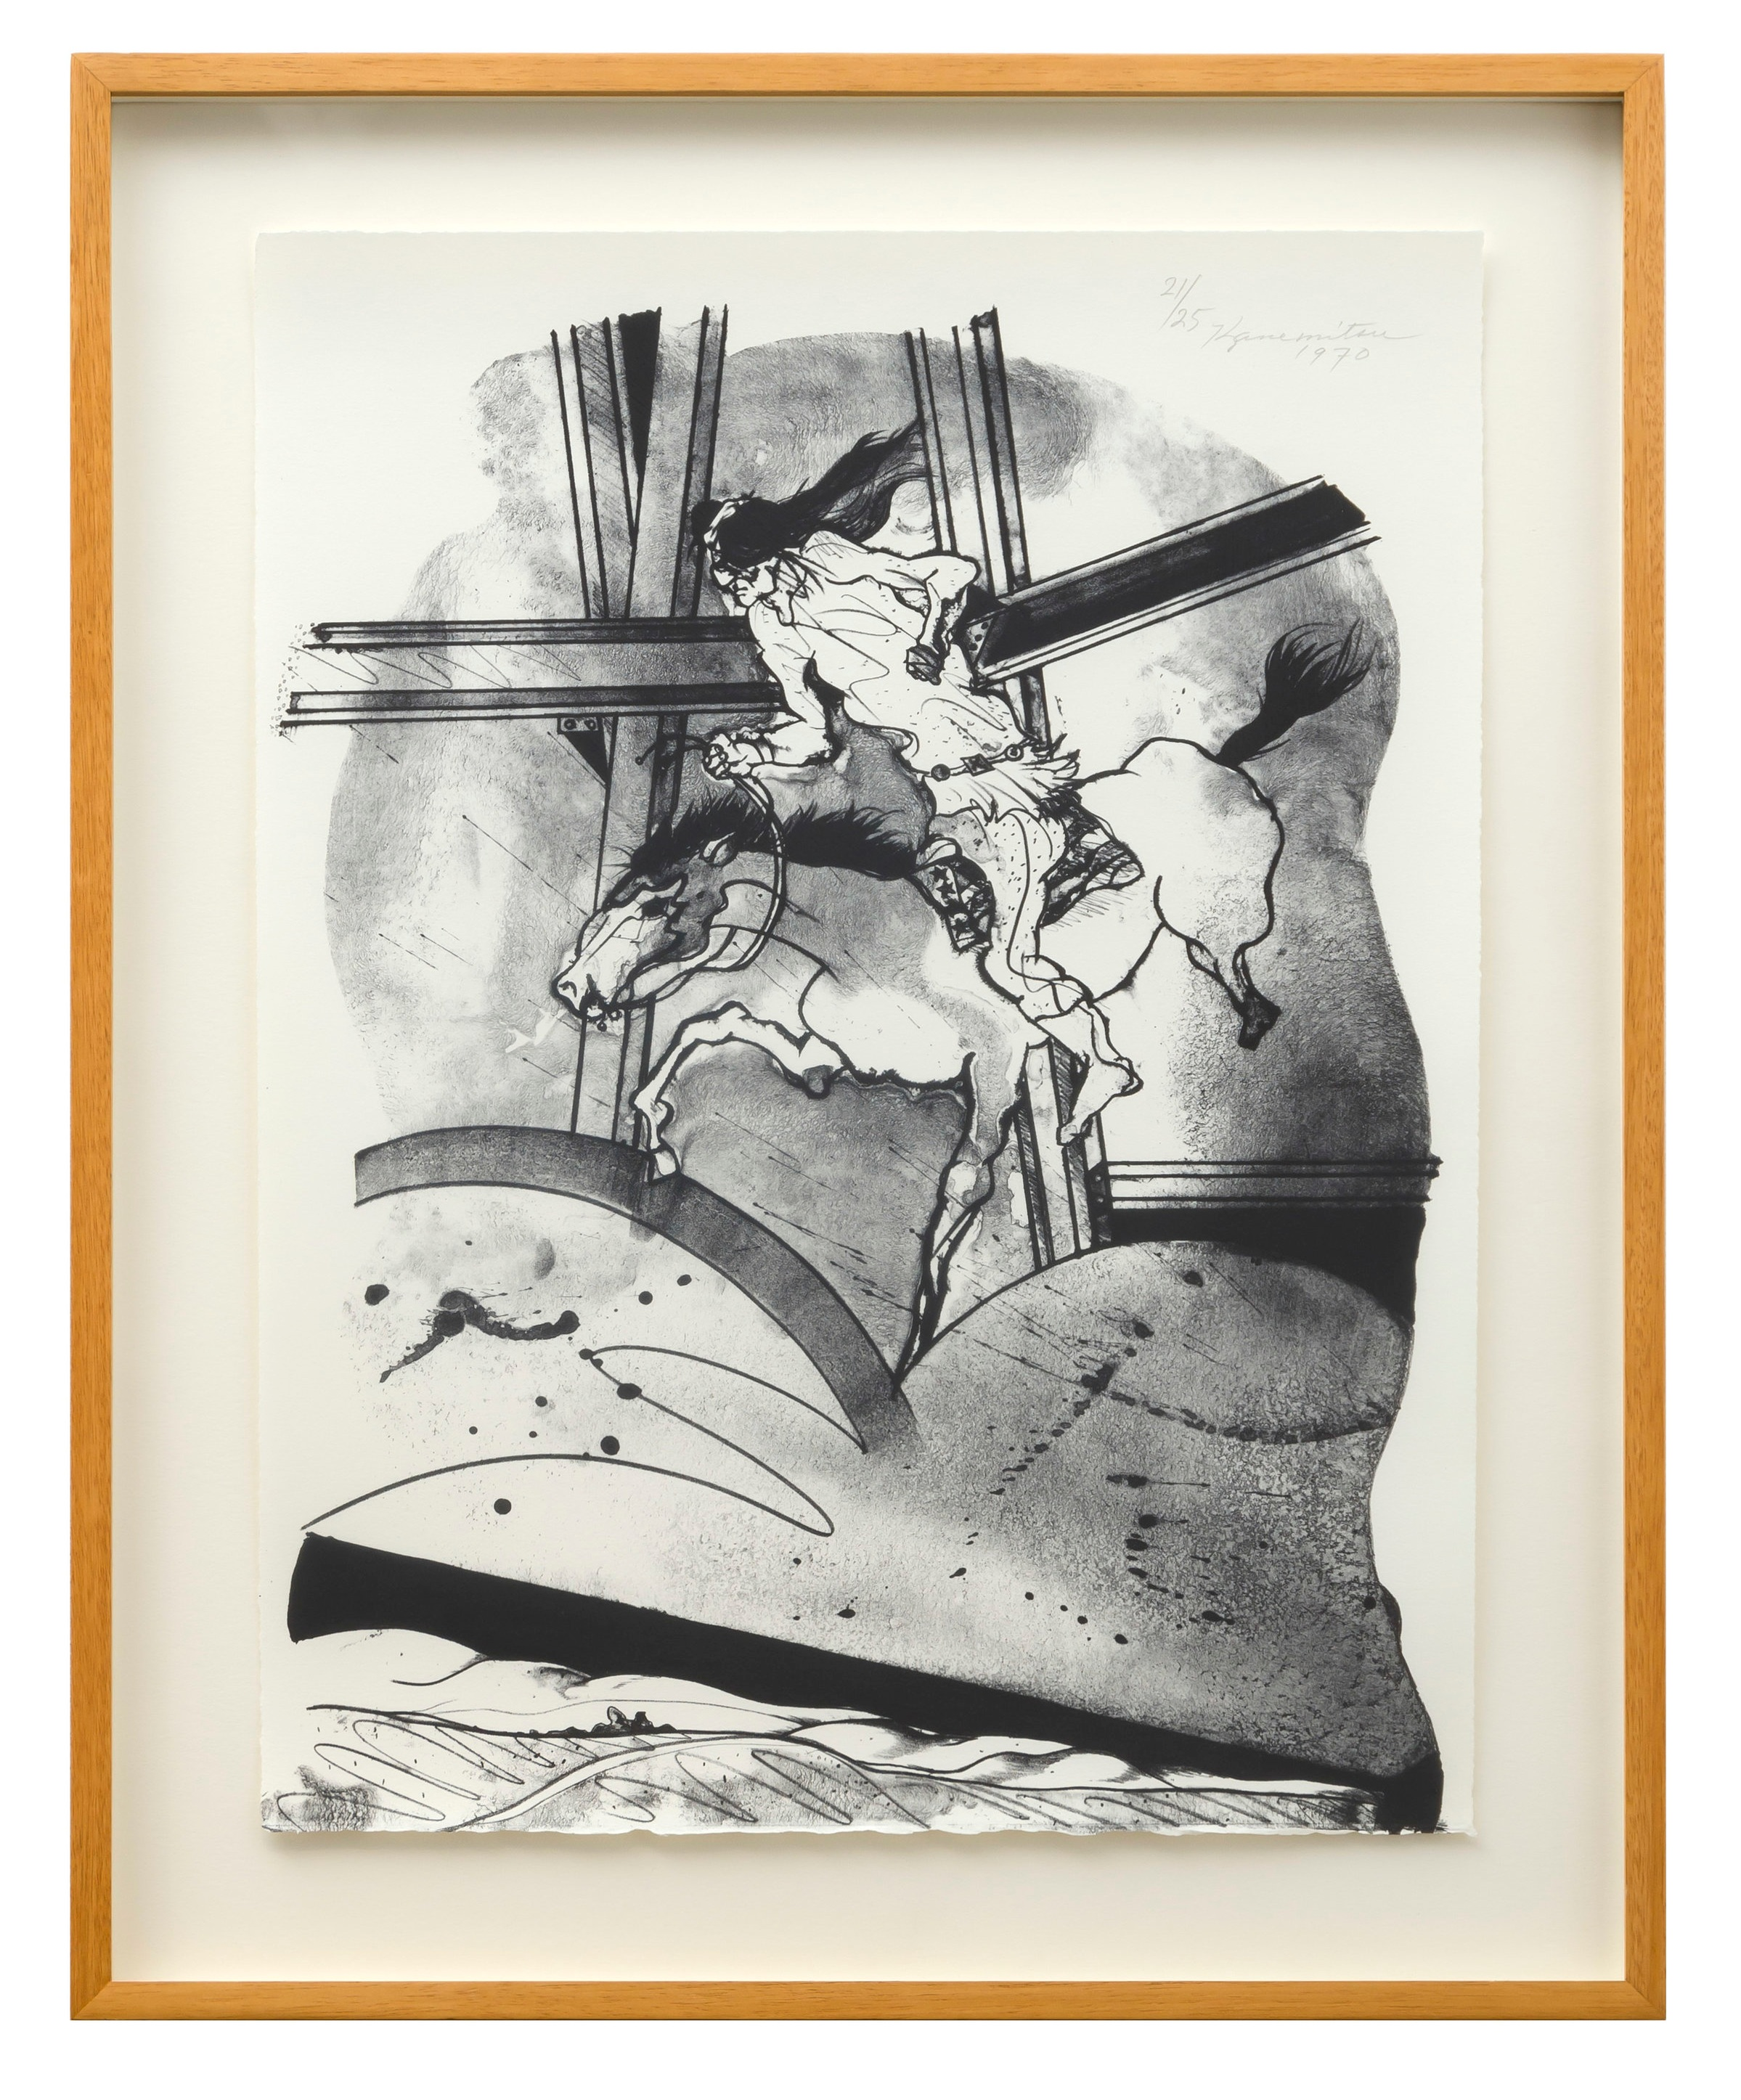 Metamorphosis L.A. I   1970  lithograph  20 x 15 inches, 50.8 x 38.1 centimeters